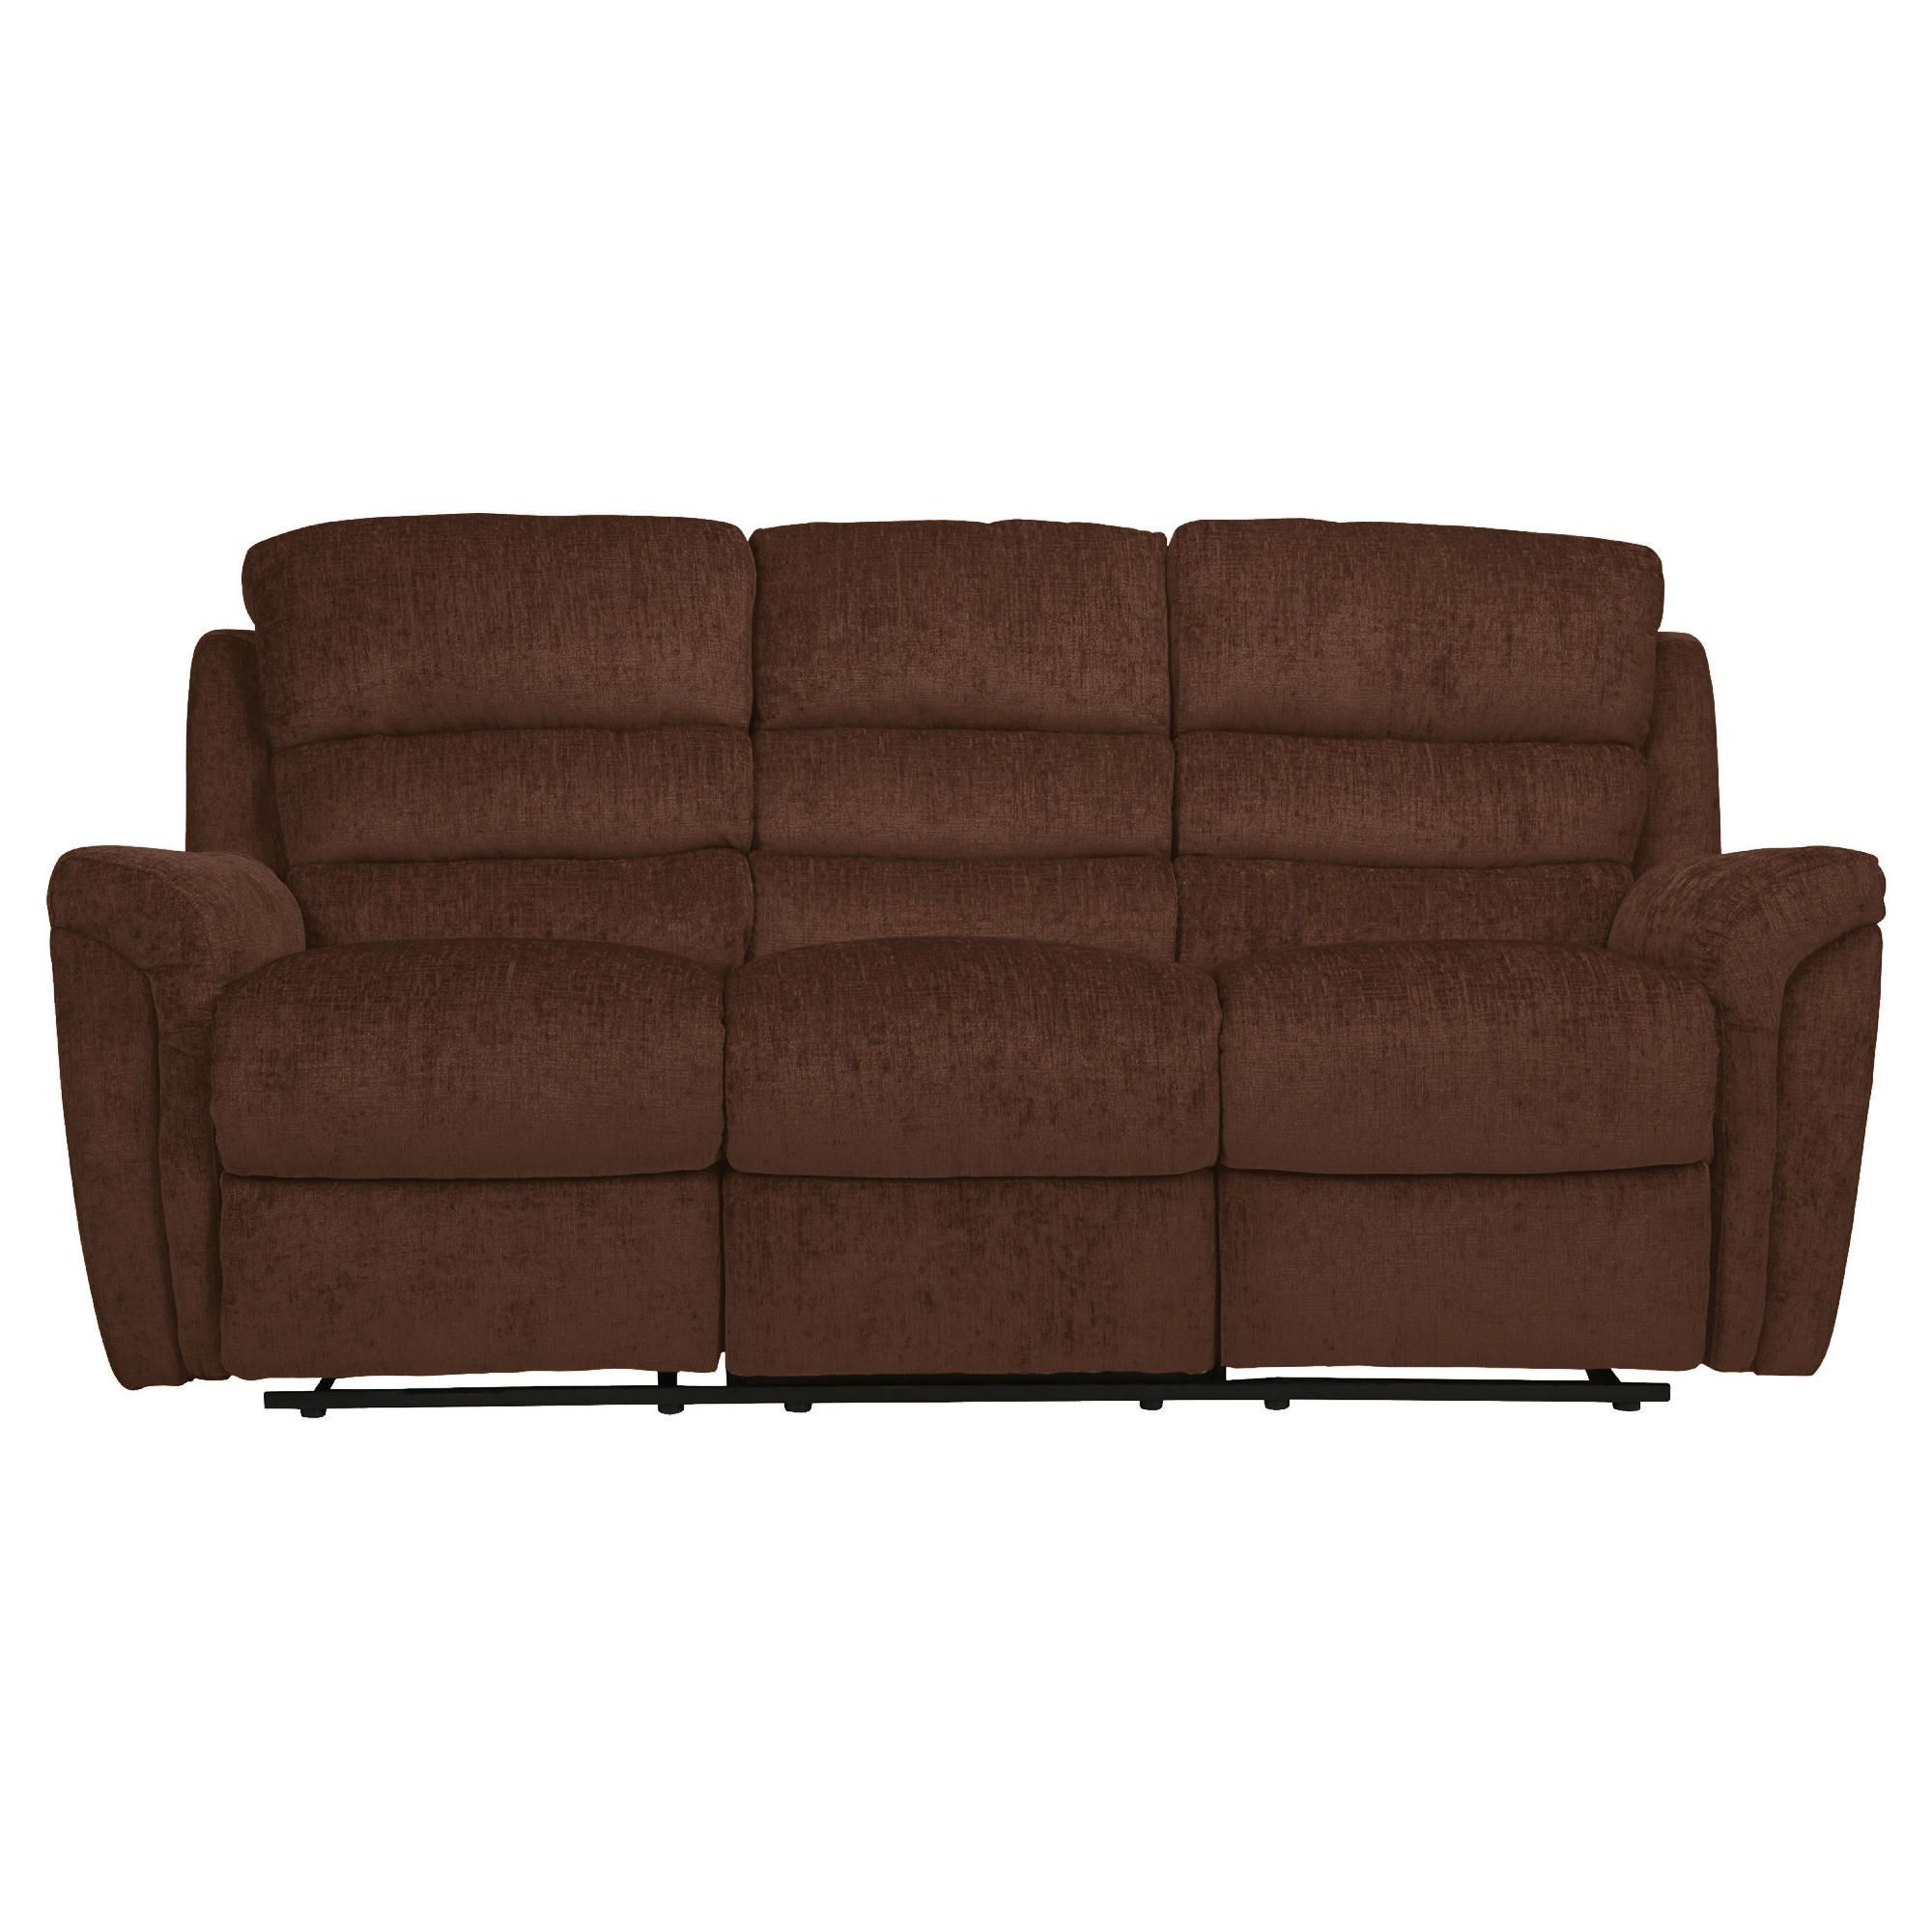 Chloe Fabric Large Recliner Sofa, Chocolate at Tescos Direct